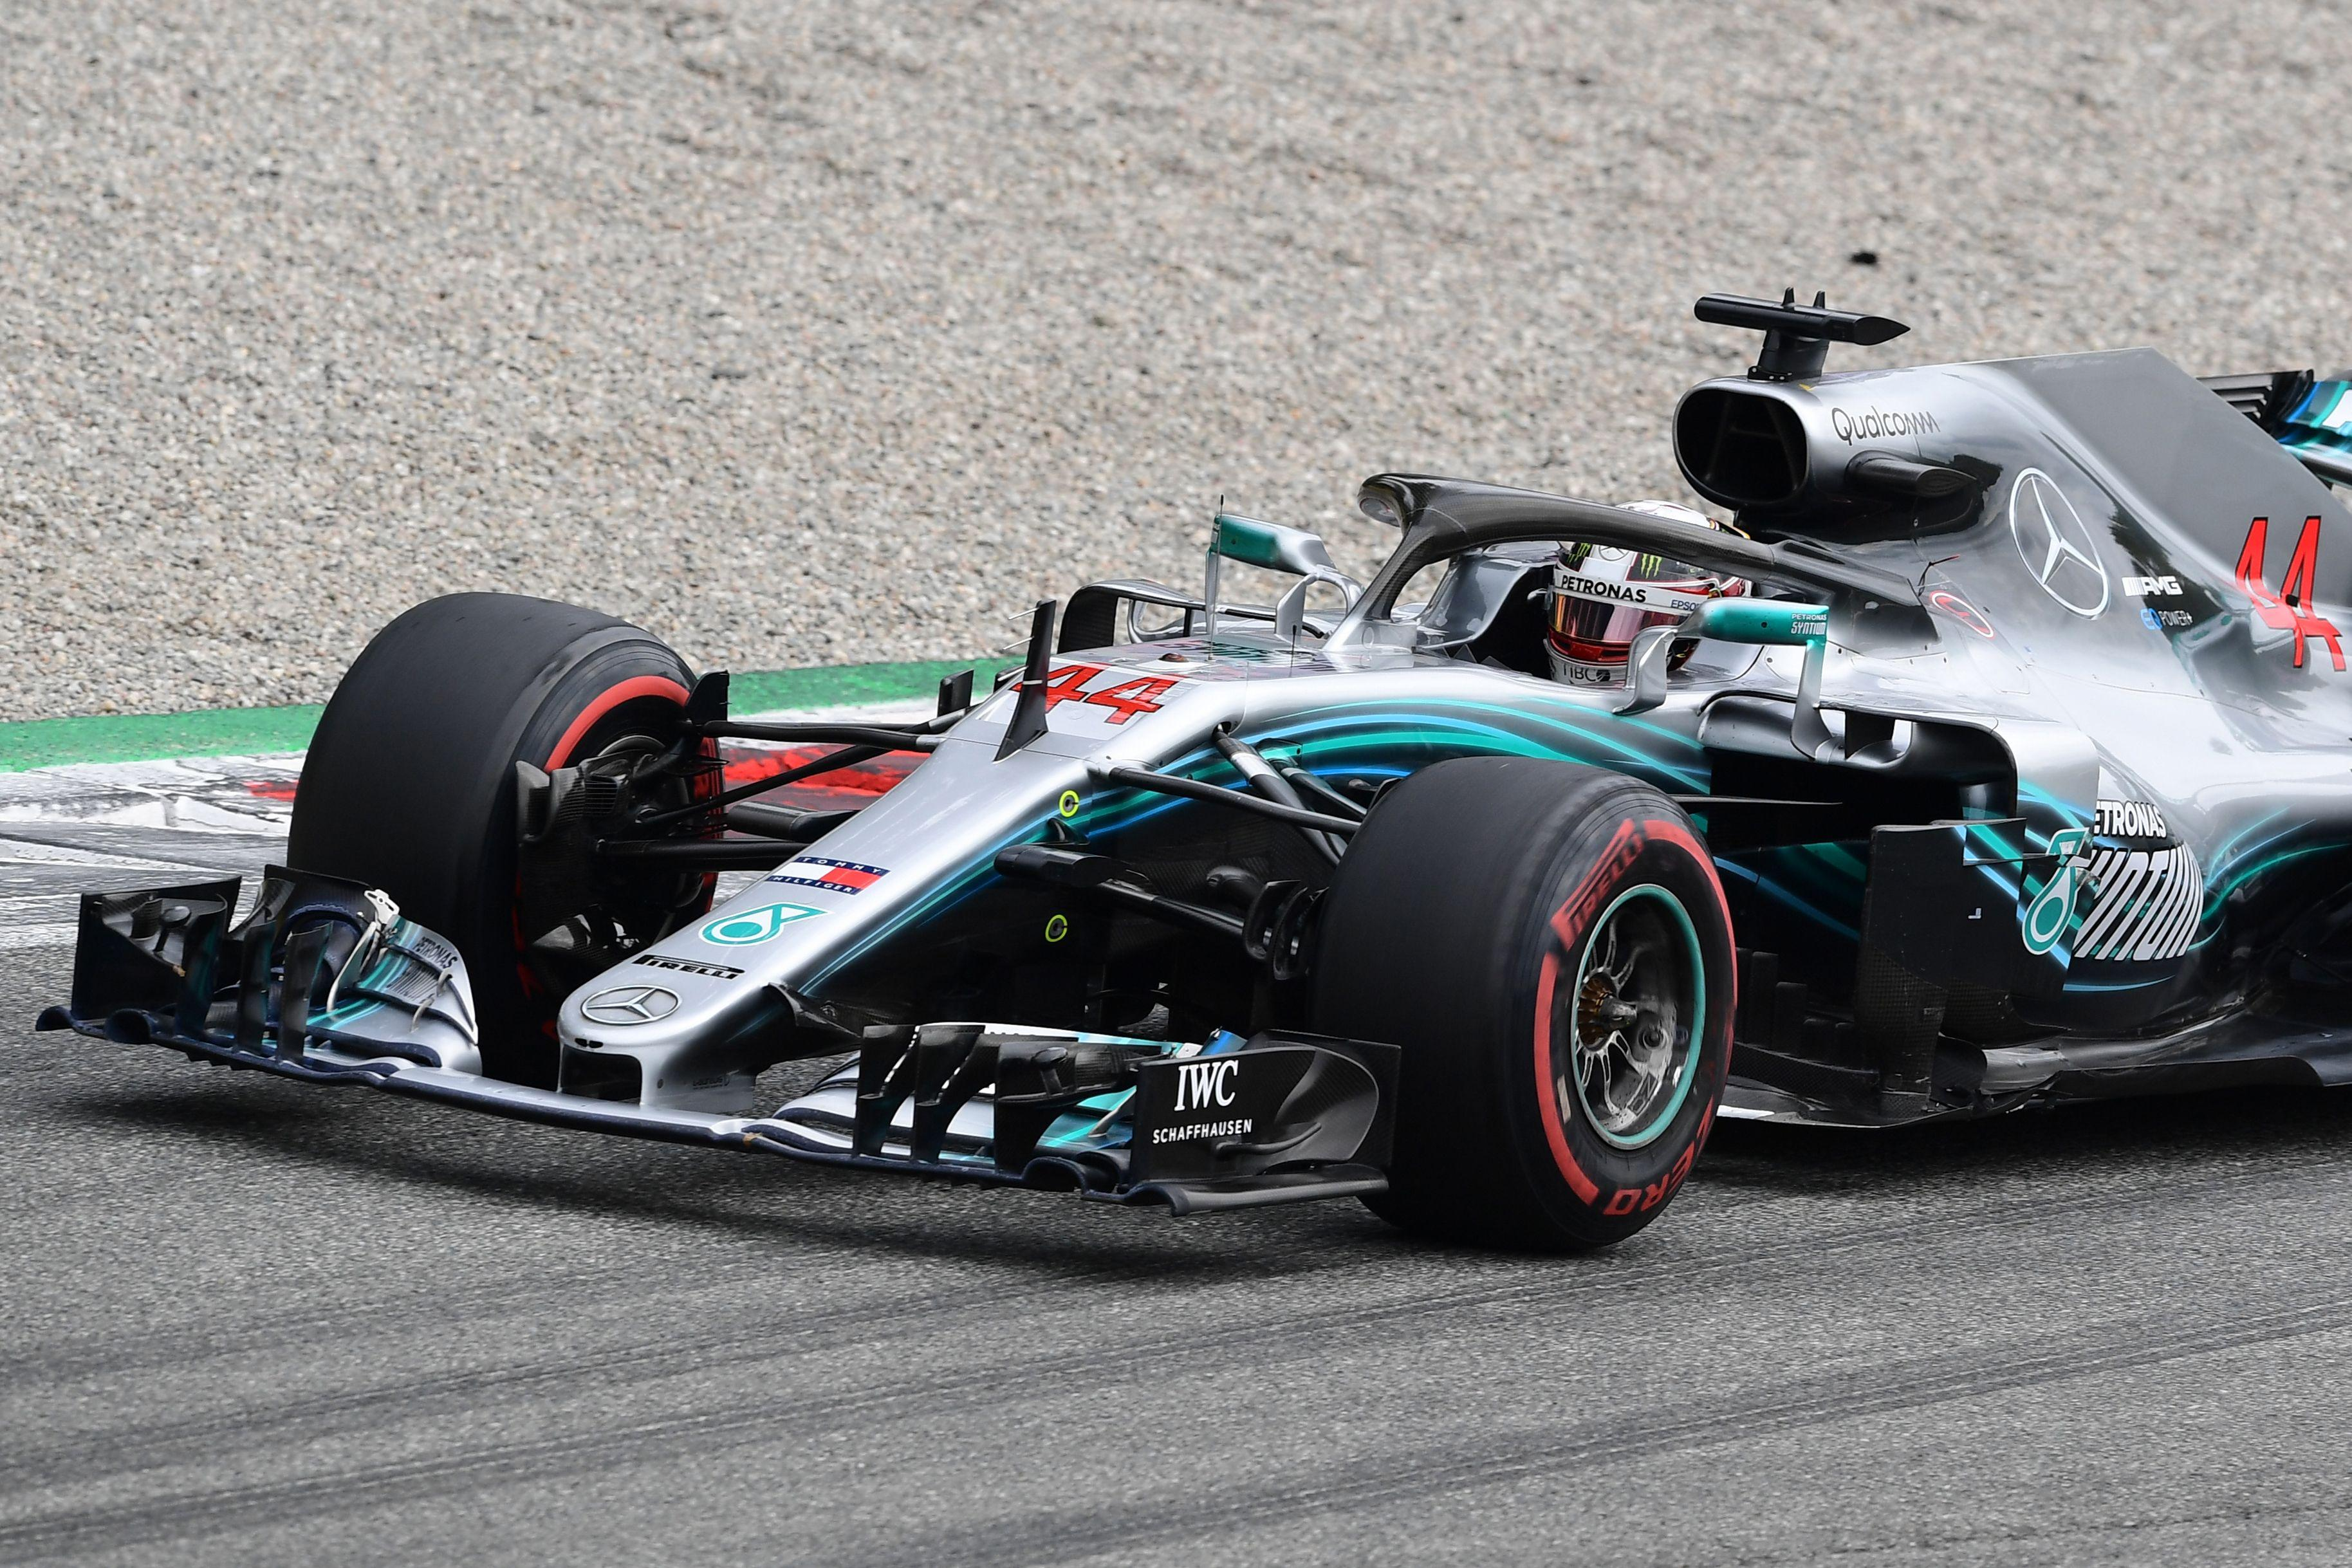 Lewis Hamilton stormed to Italian GP glory to extend his lead at the top of the world title table